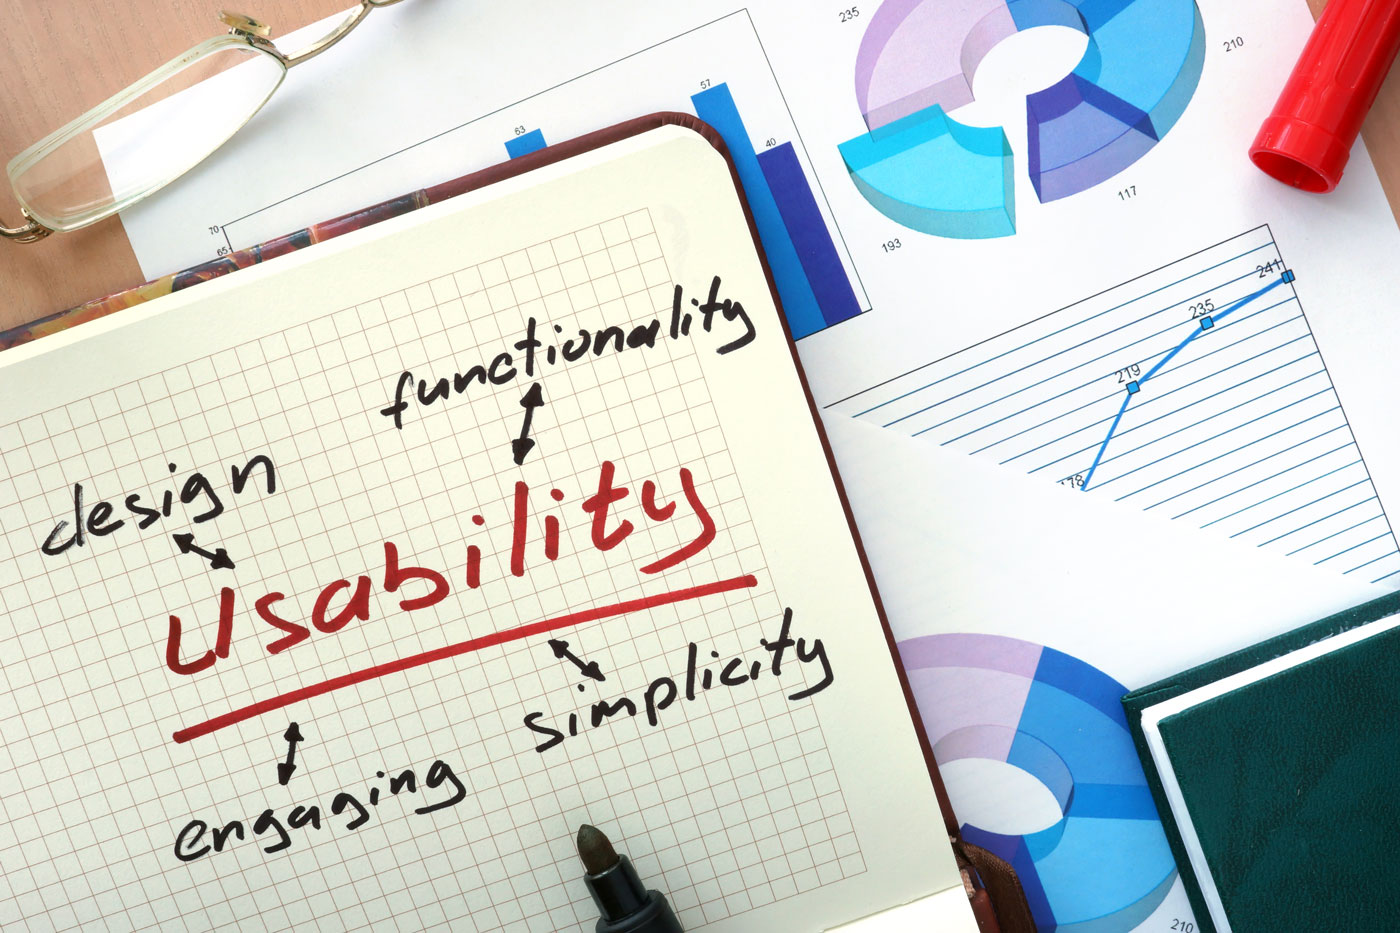 seo web design usability how to make the best user experience